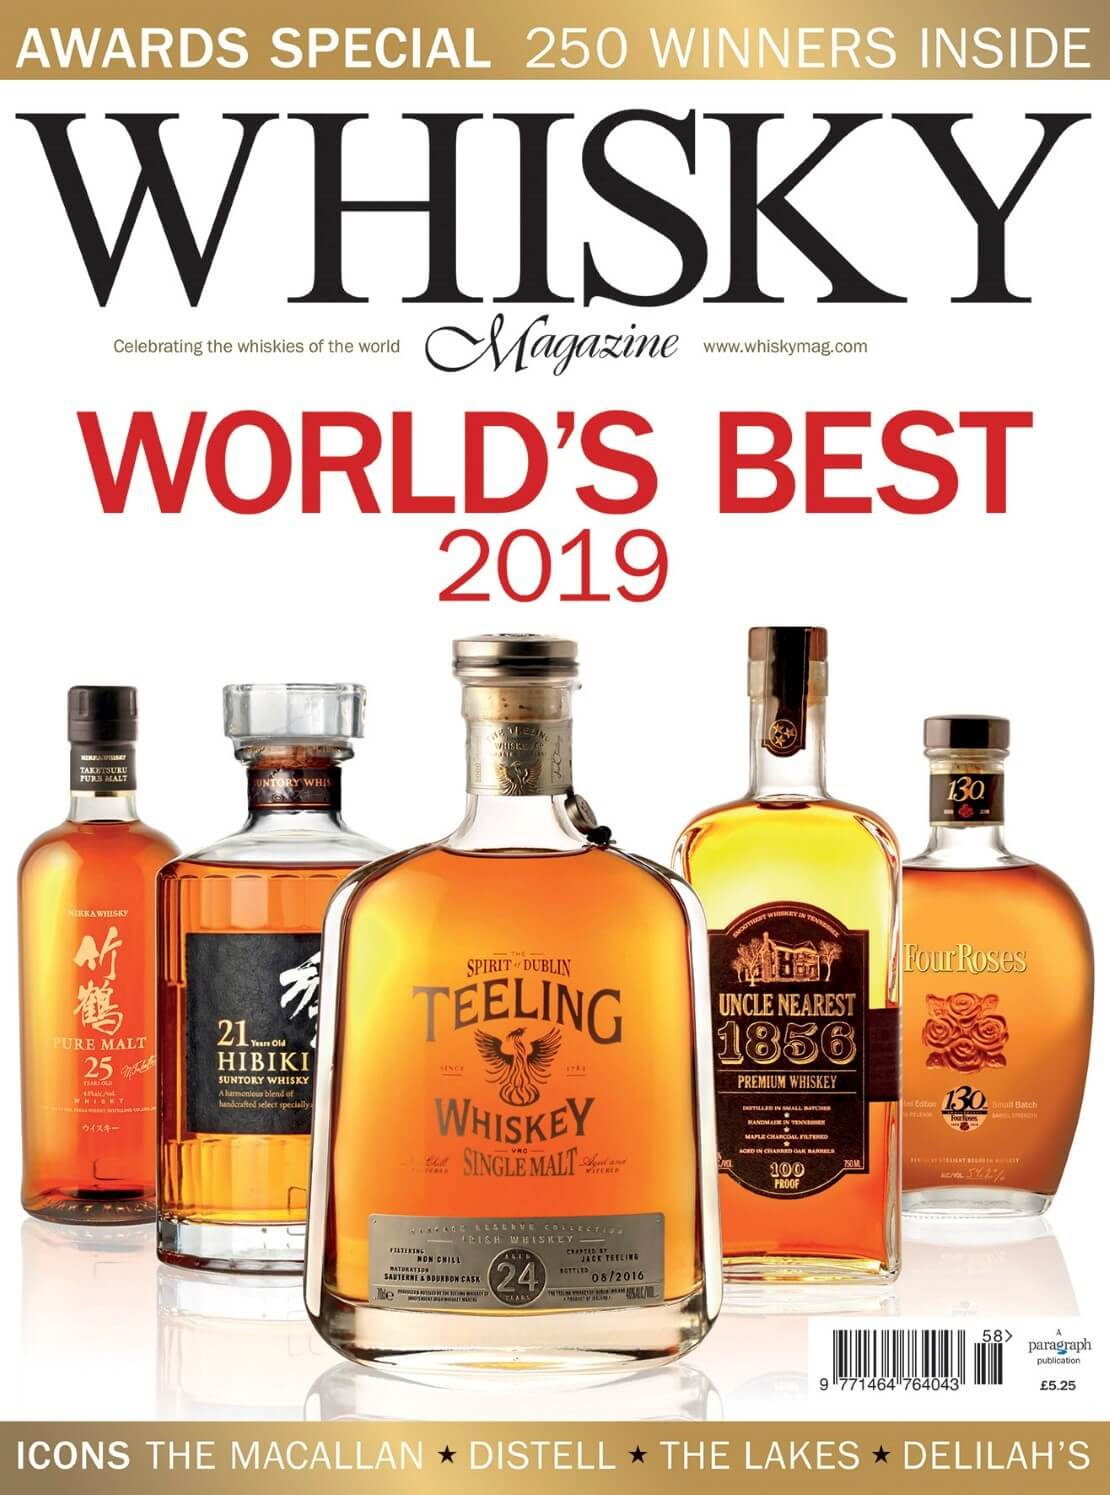 Awards special, World's Best 2019 and Icons of Whisky